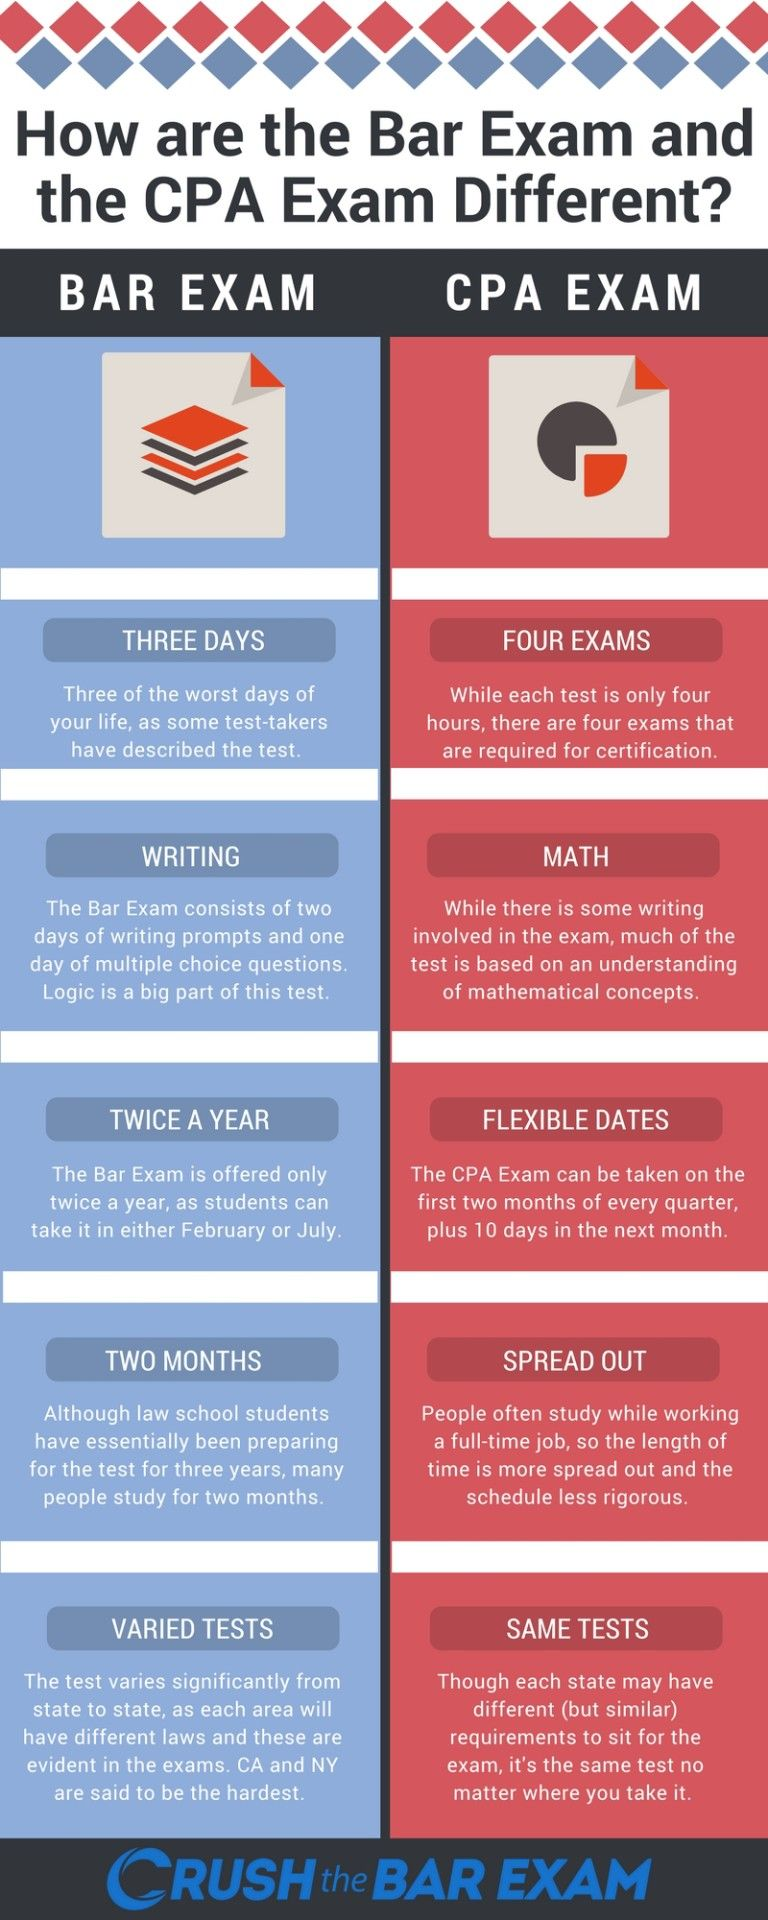 cpa_exam_vs-_bar_exam | Bar Exam Prep Tips | Cpa exam, Cpa